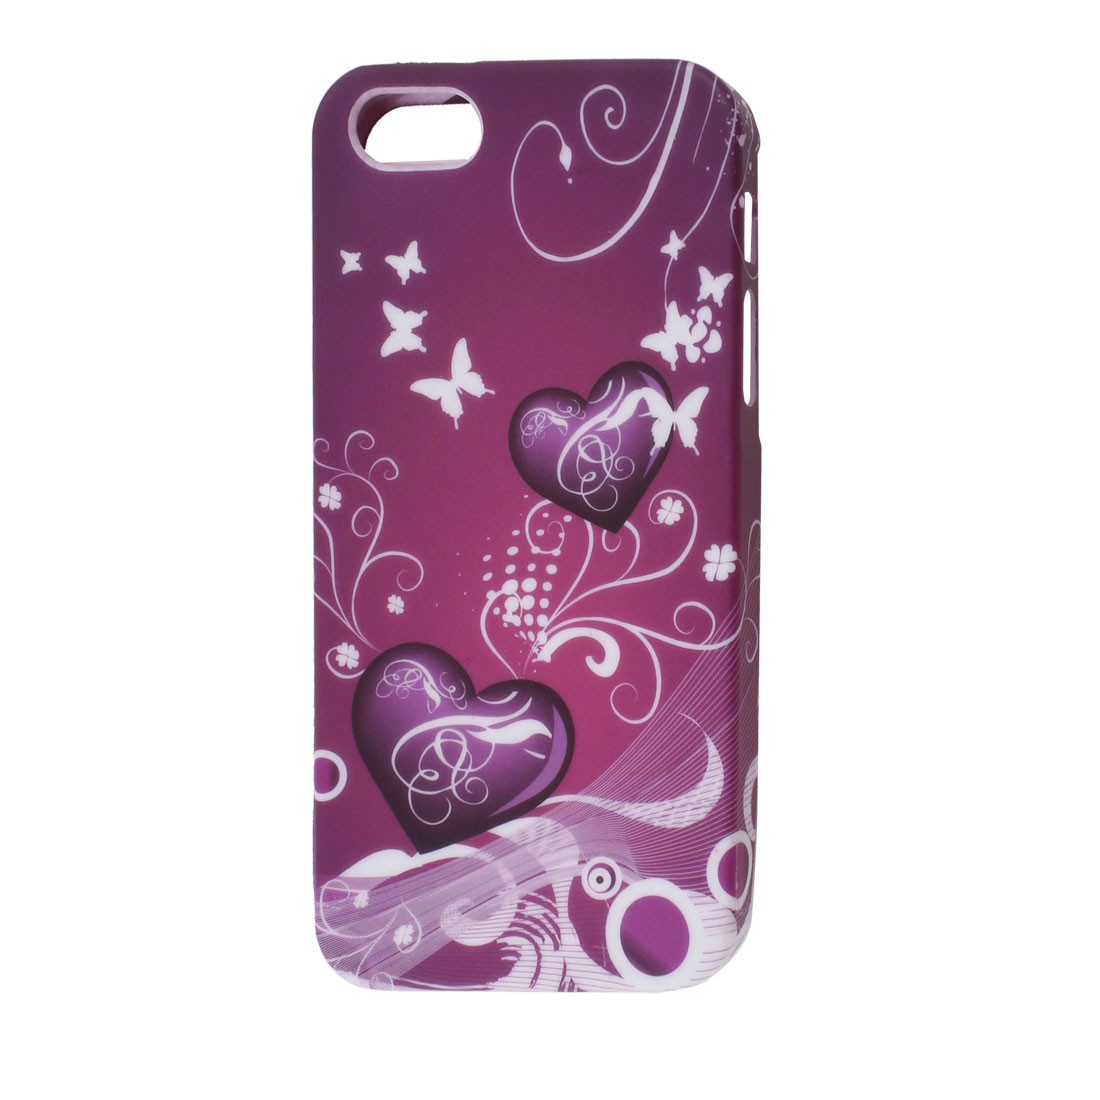 Purple Burgundy Heart Swirl Pattern TPU Soft Case Cover for Apple iPhone 5 5G